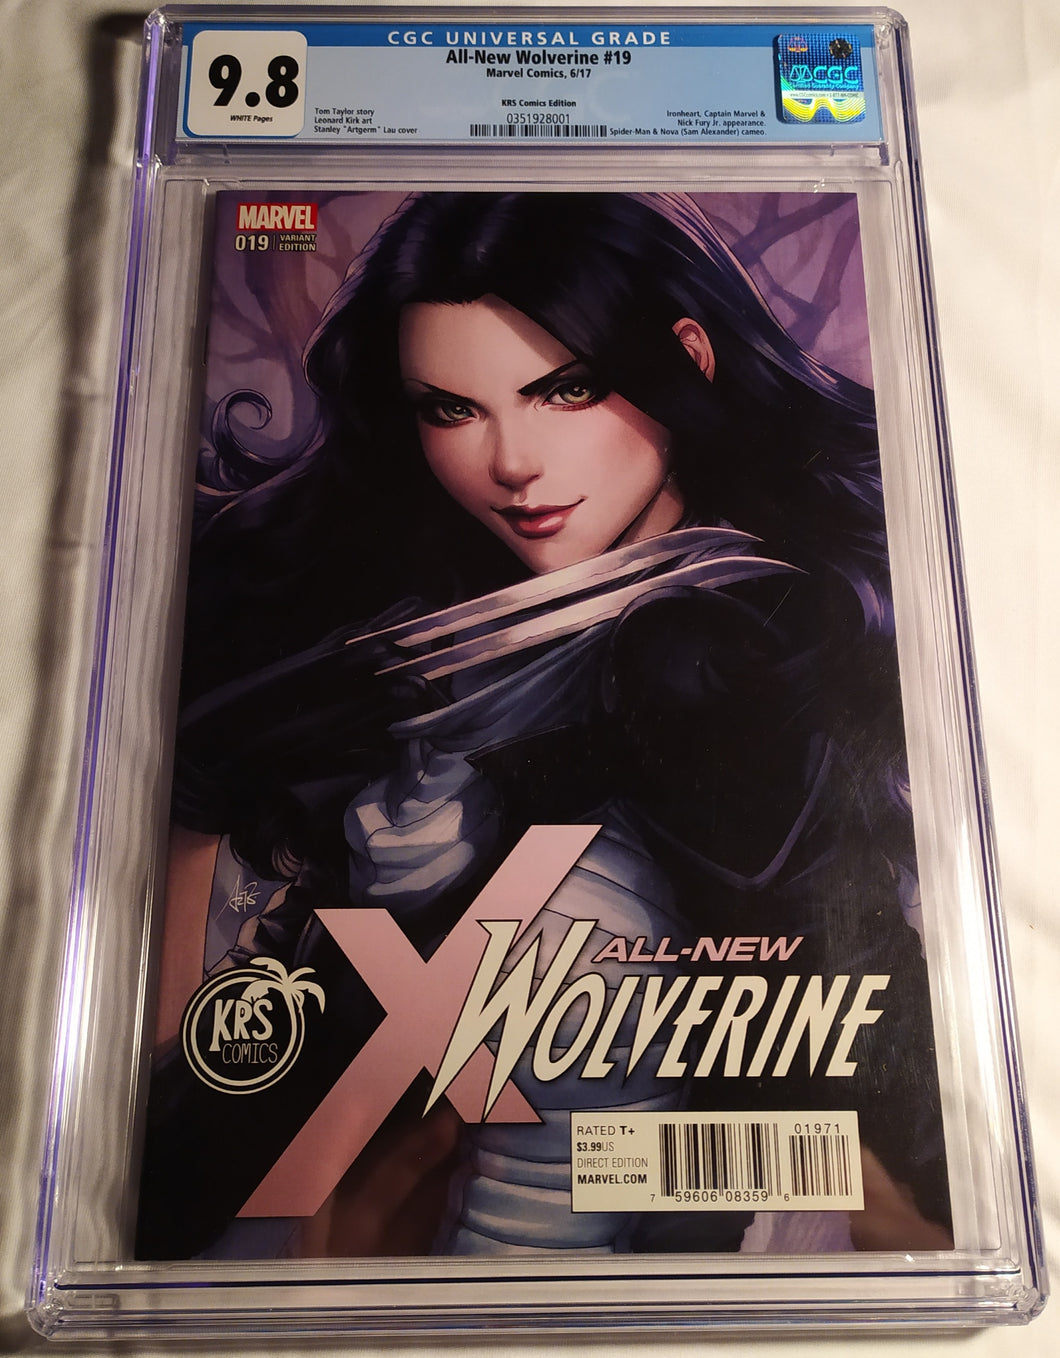 All New Wolverine 19 Artgerm Color Variant 9.8 by CGC